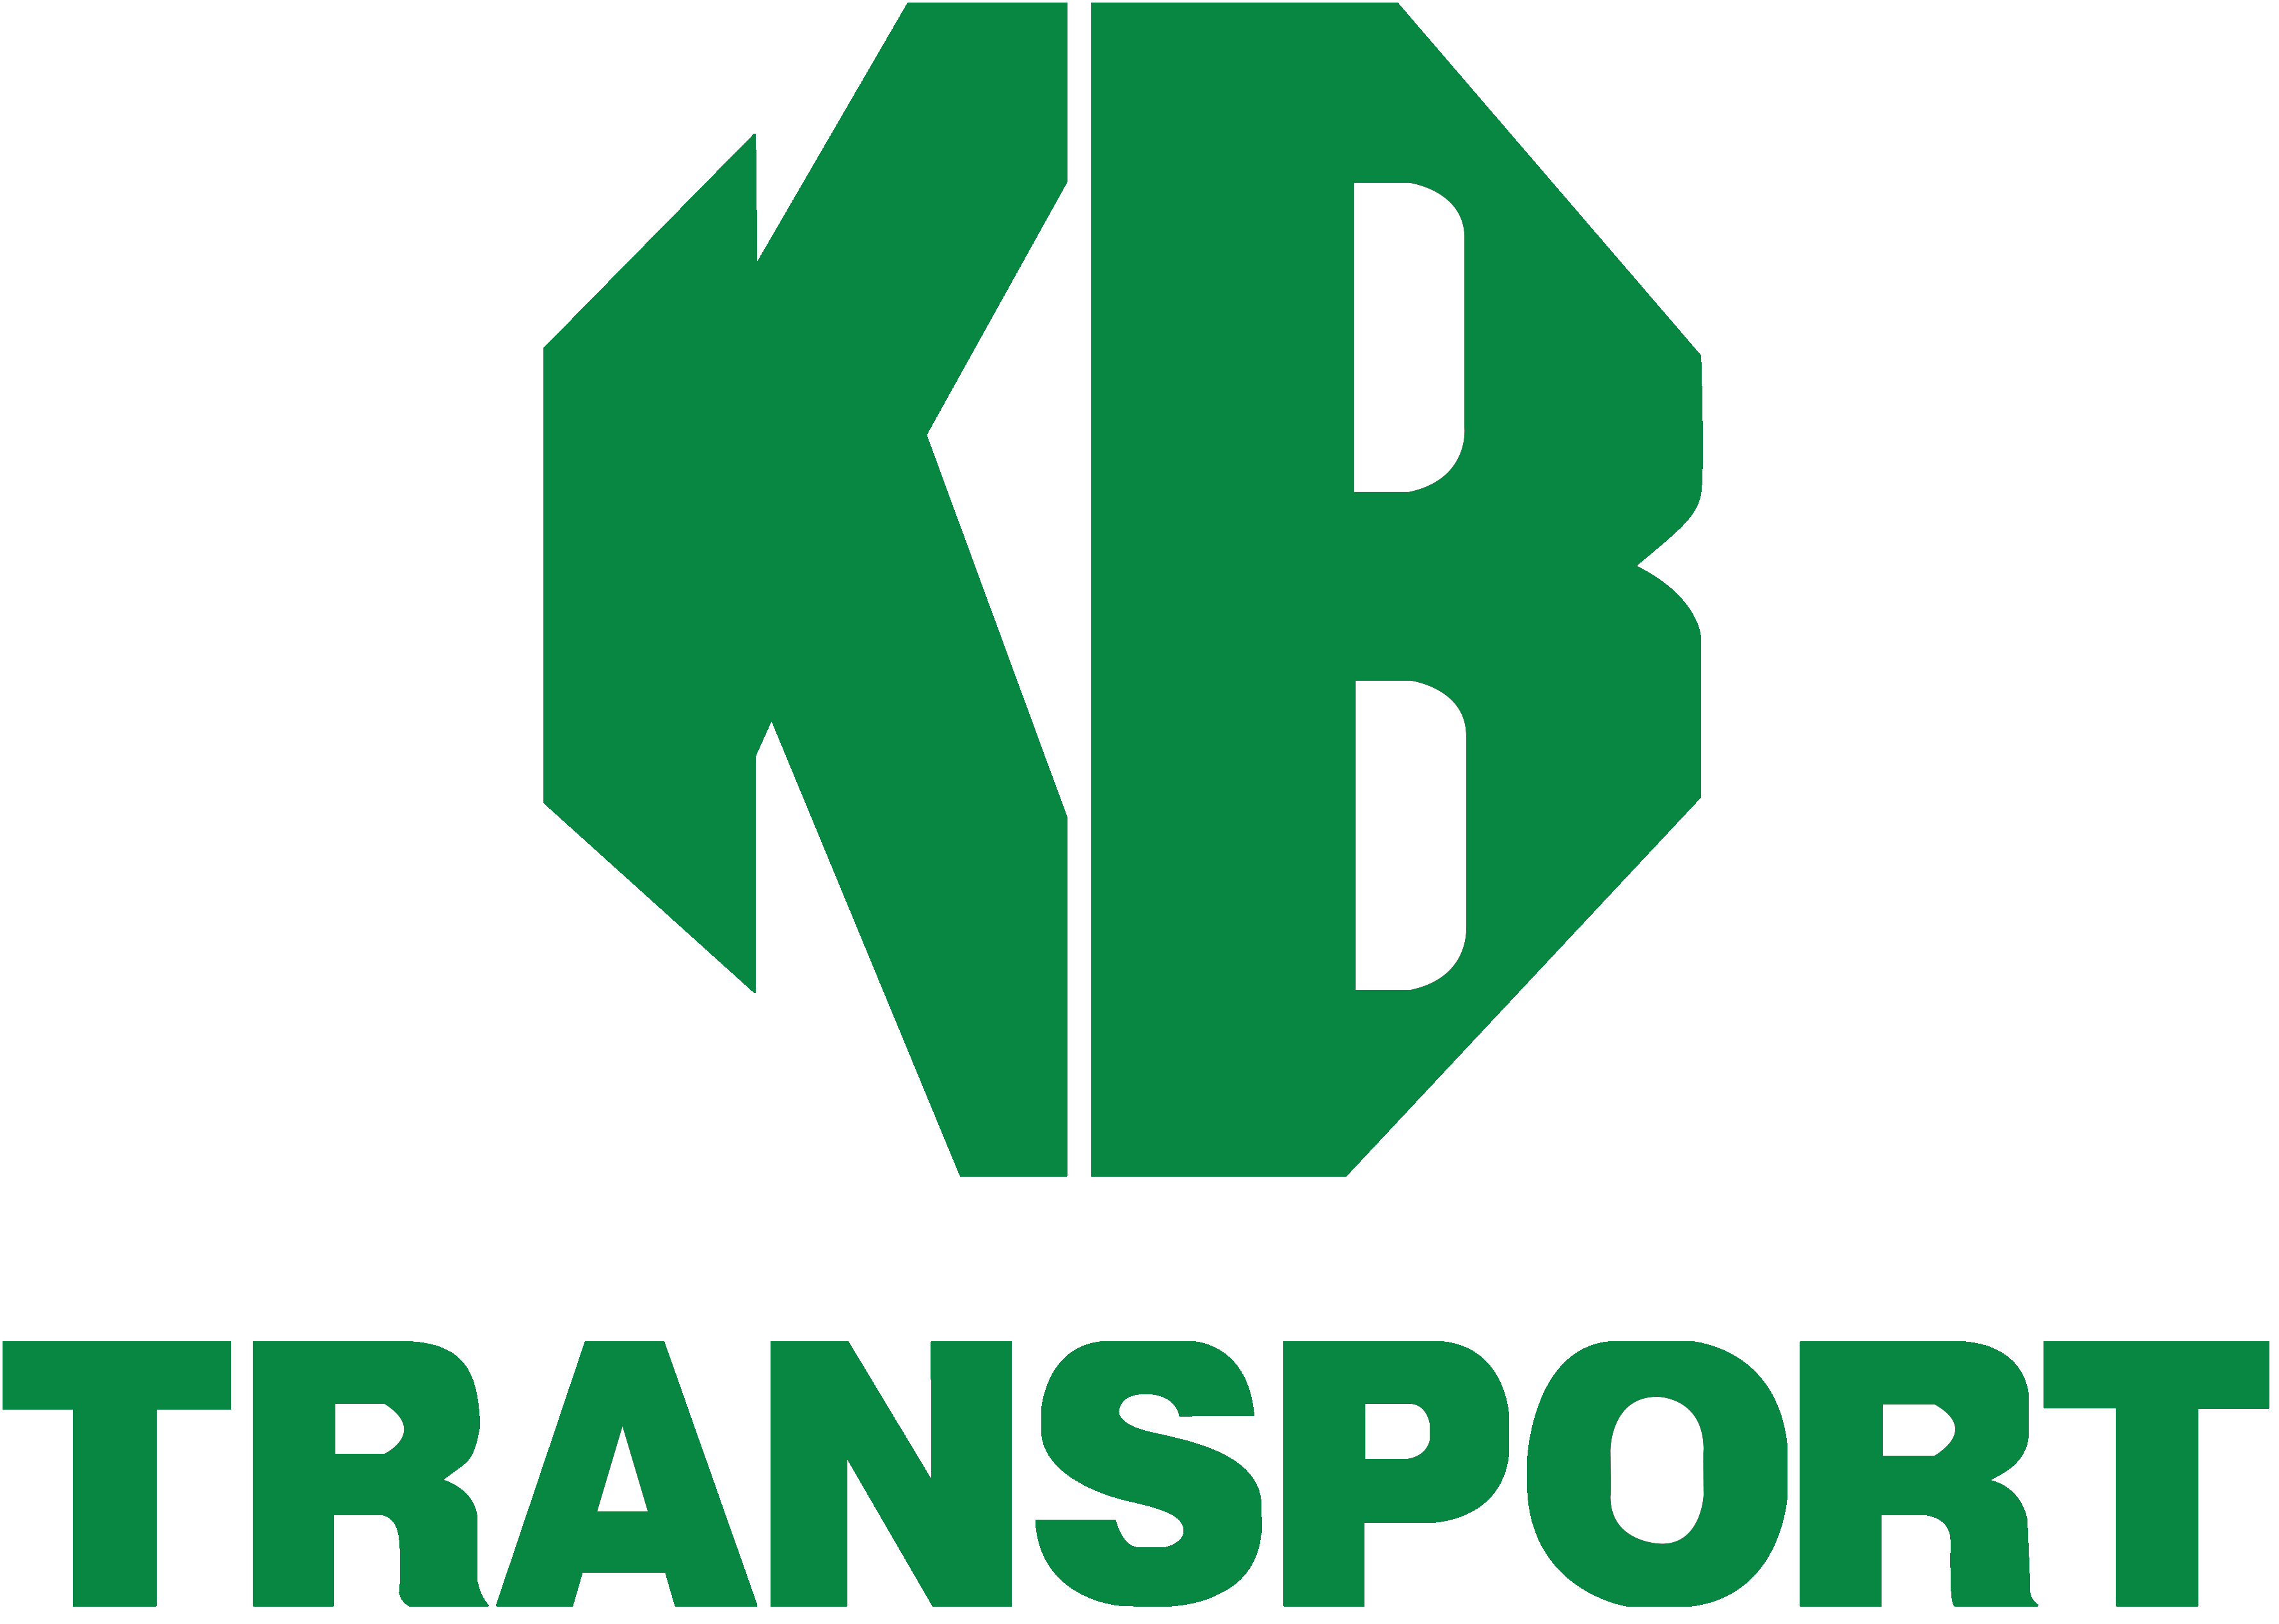 KB Transport A/S